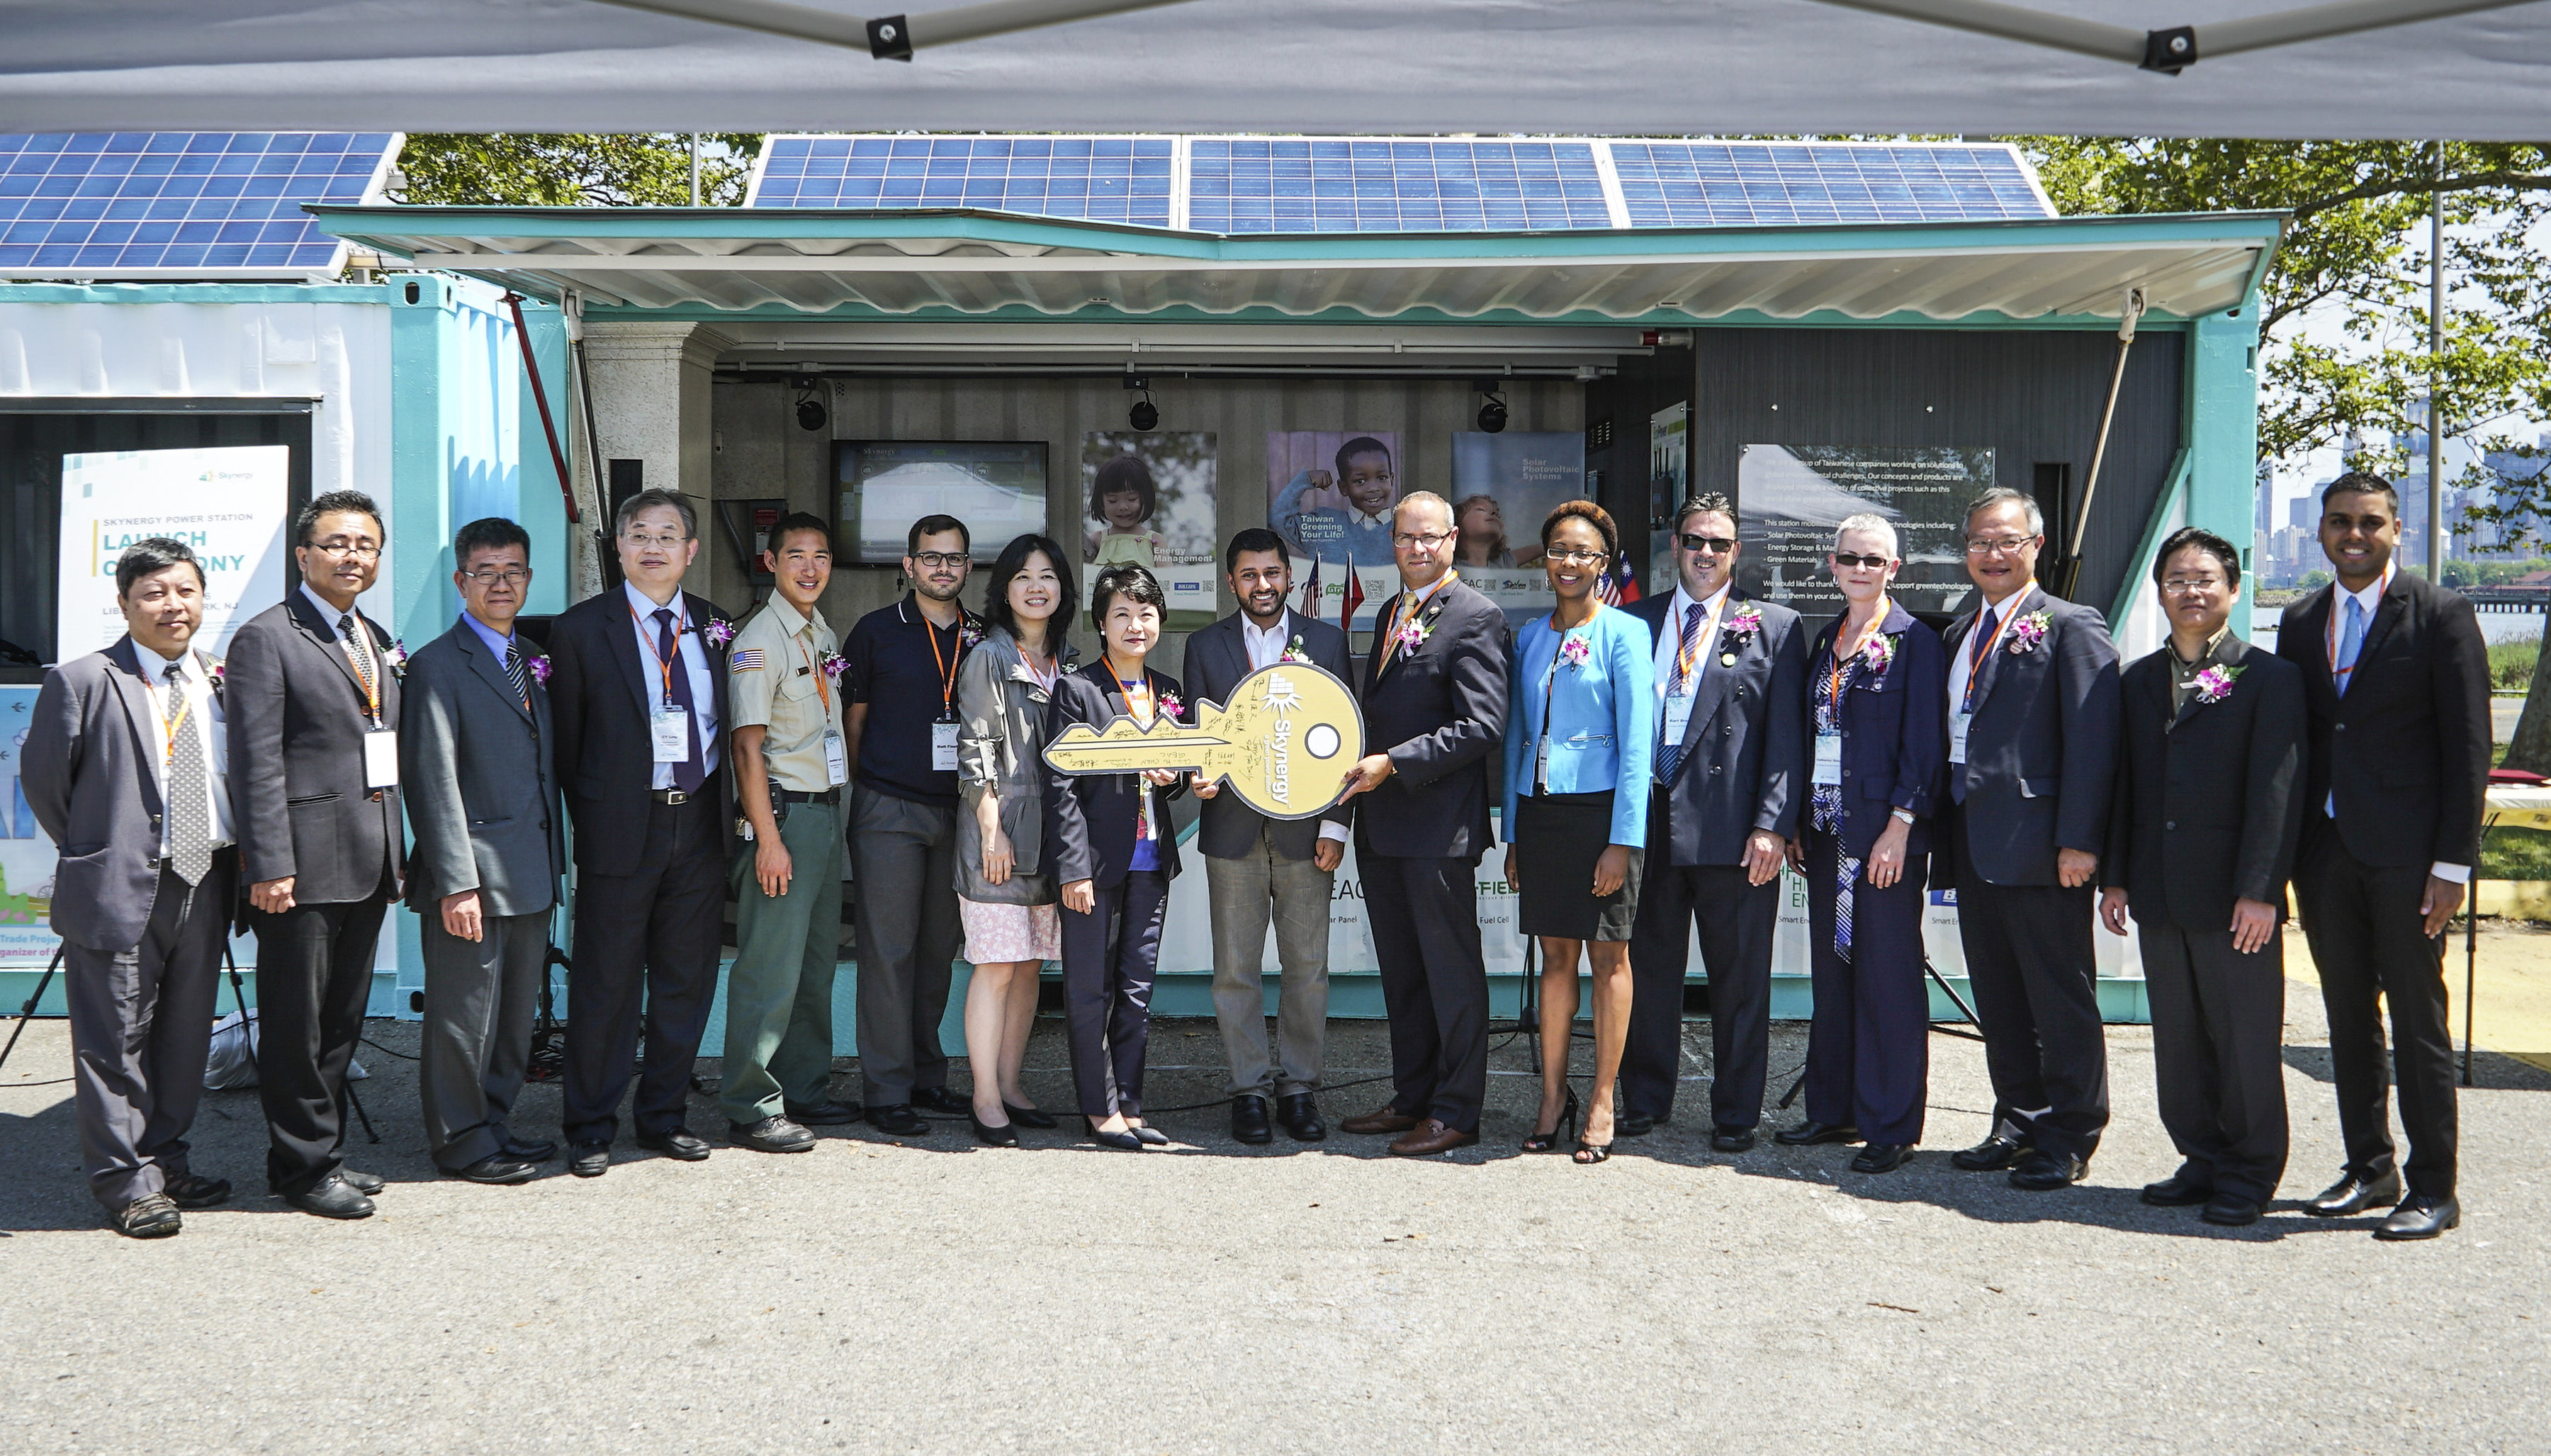 Taiwan Delivers Eco Power To Nj Liberty State Park